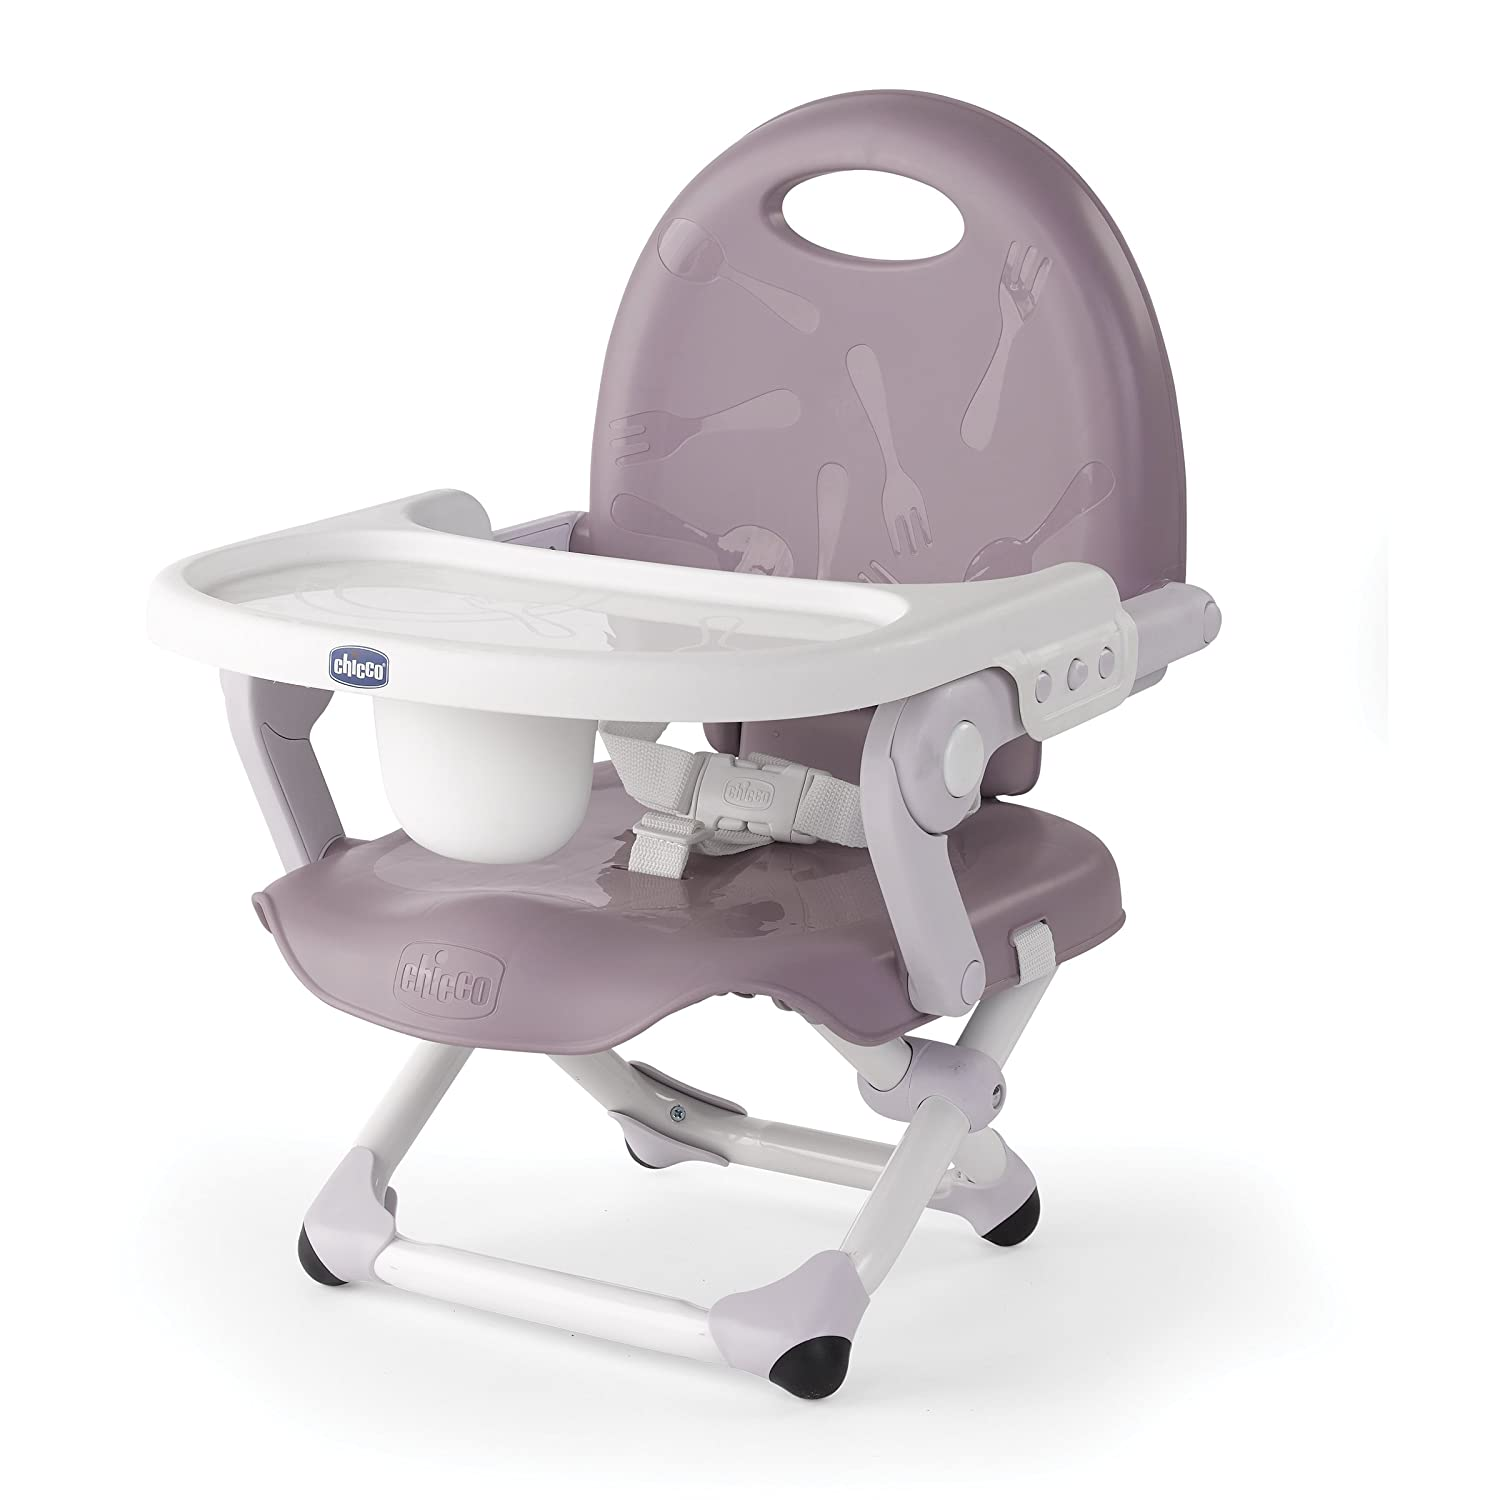 Chicco Pocket Snack Booster Seat, Stone 07079363230070